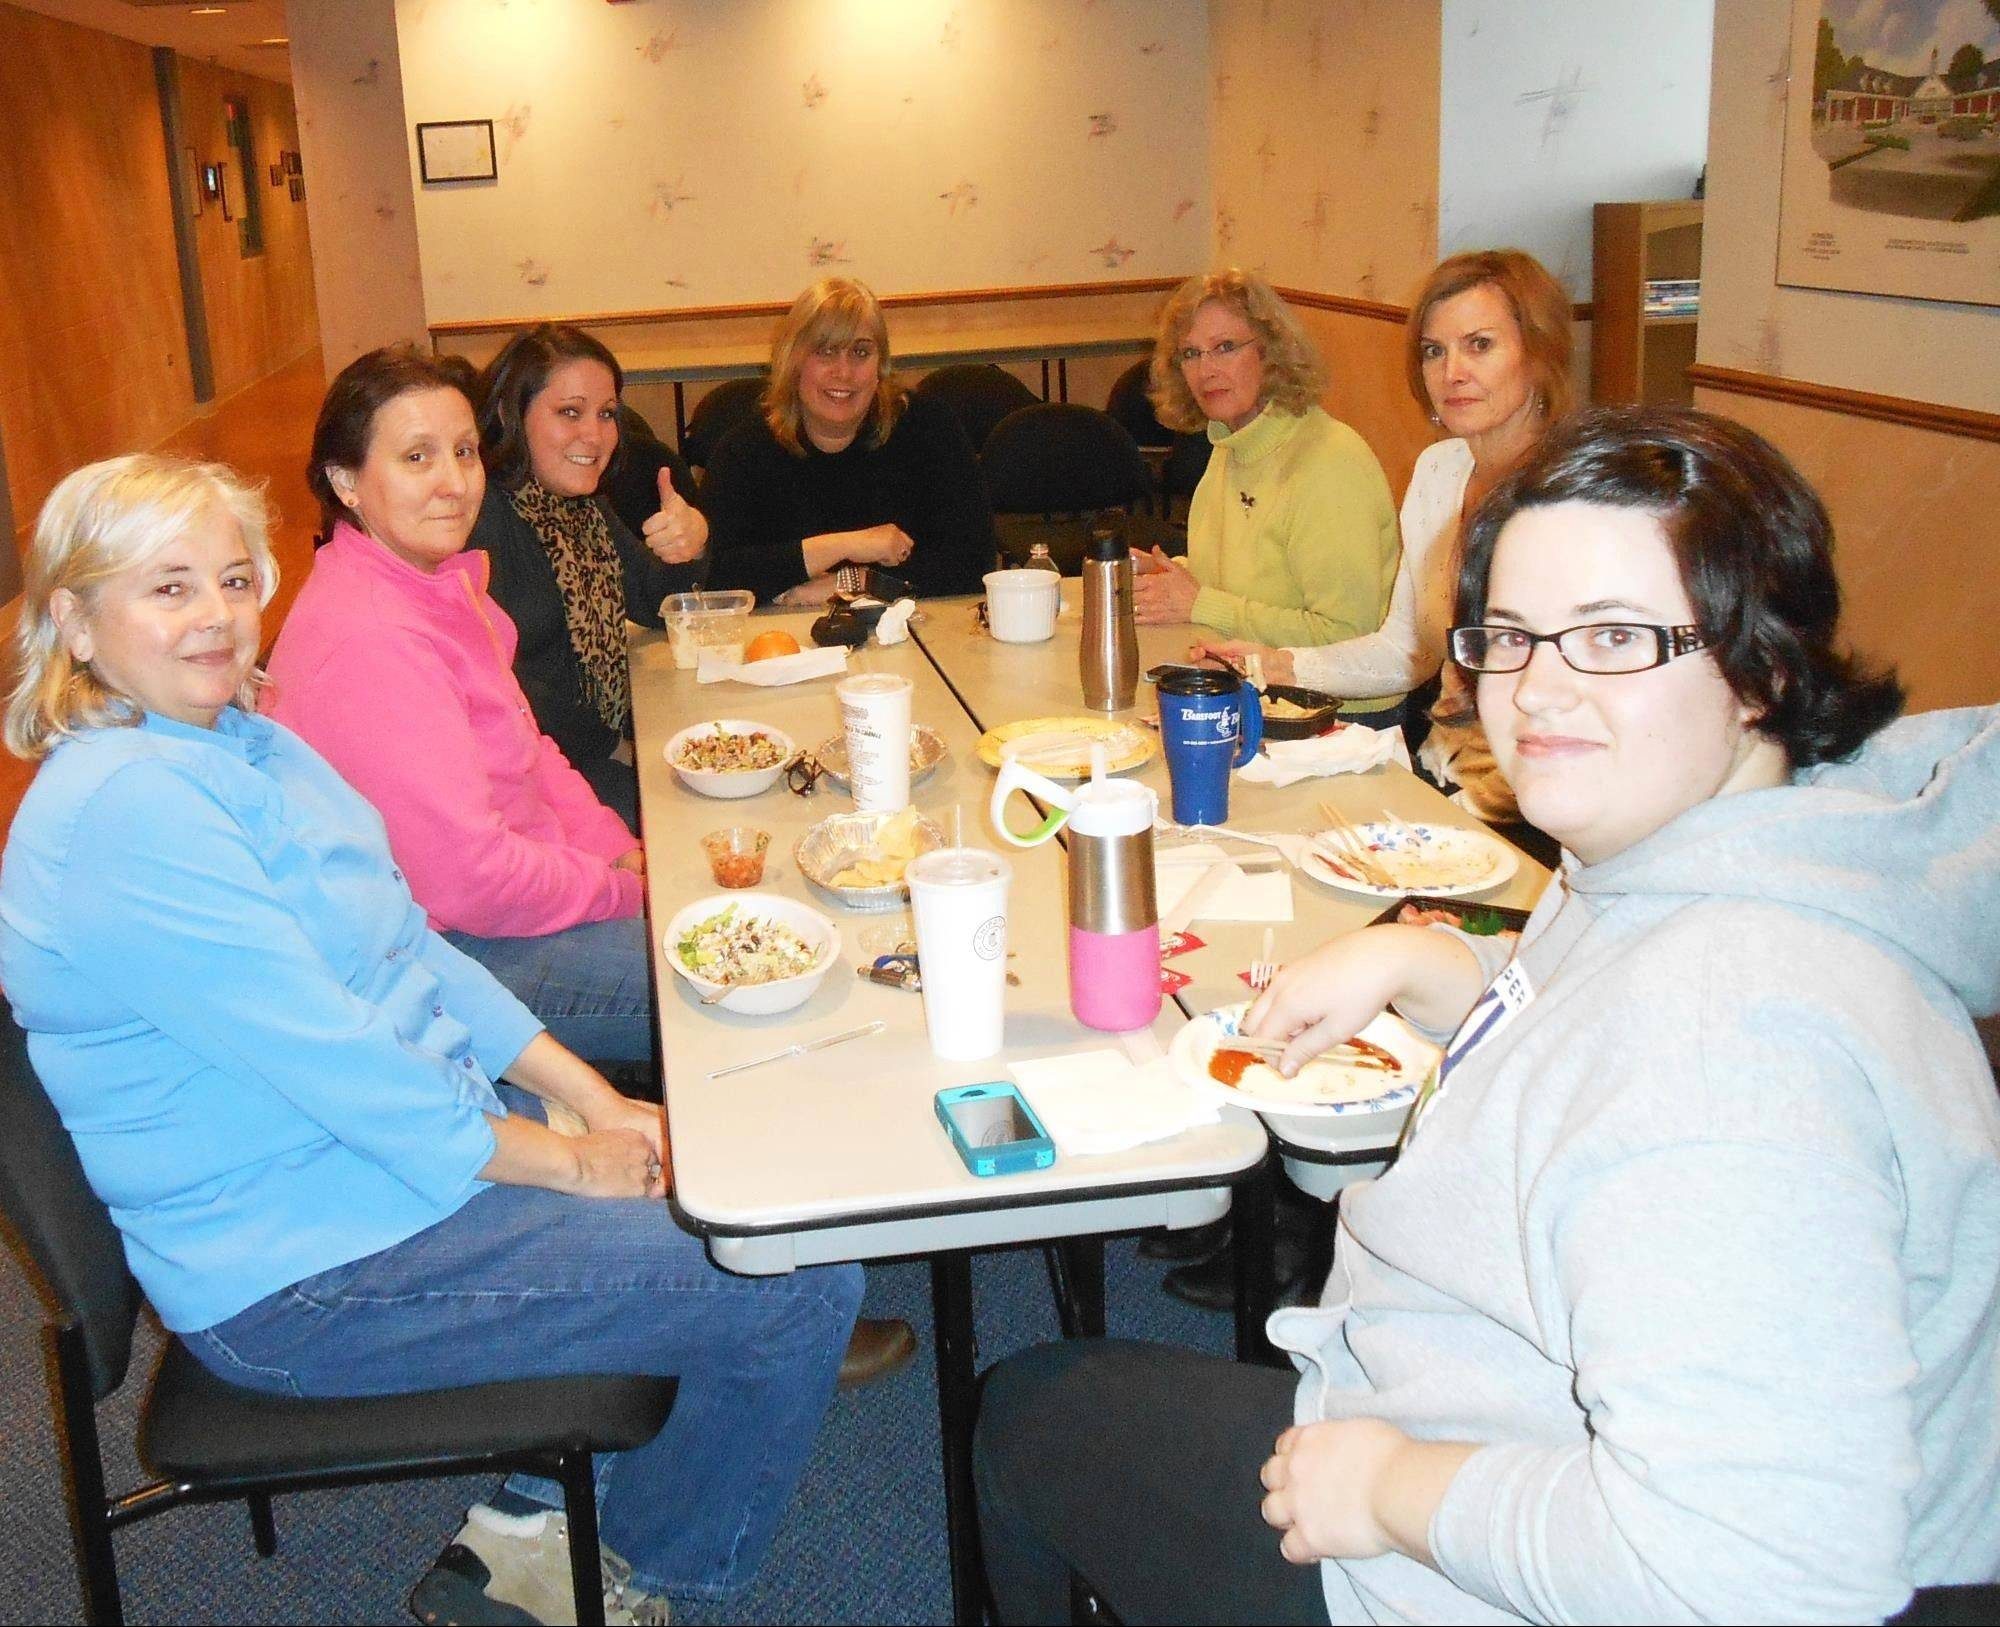 The Mundelein Park District team, Park View Fittest, enjoys a healthy lunch.